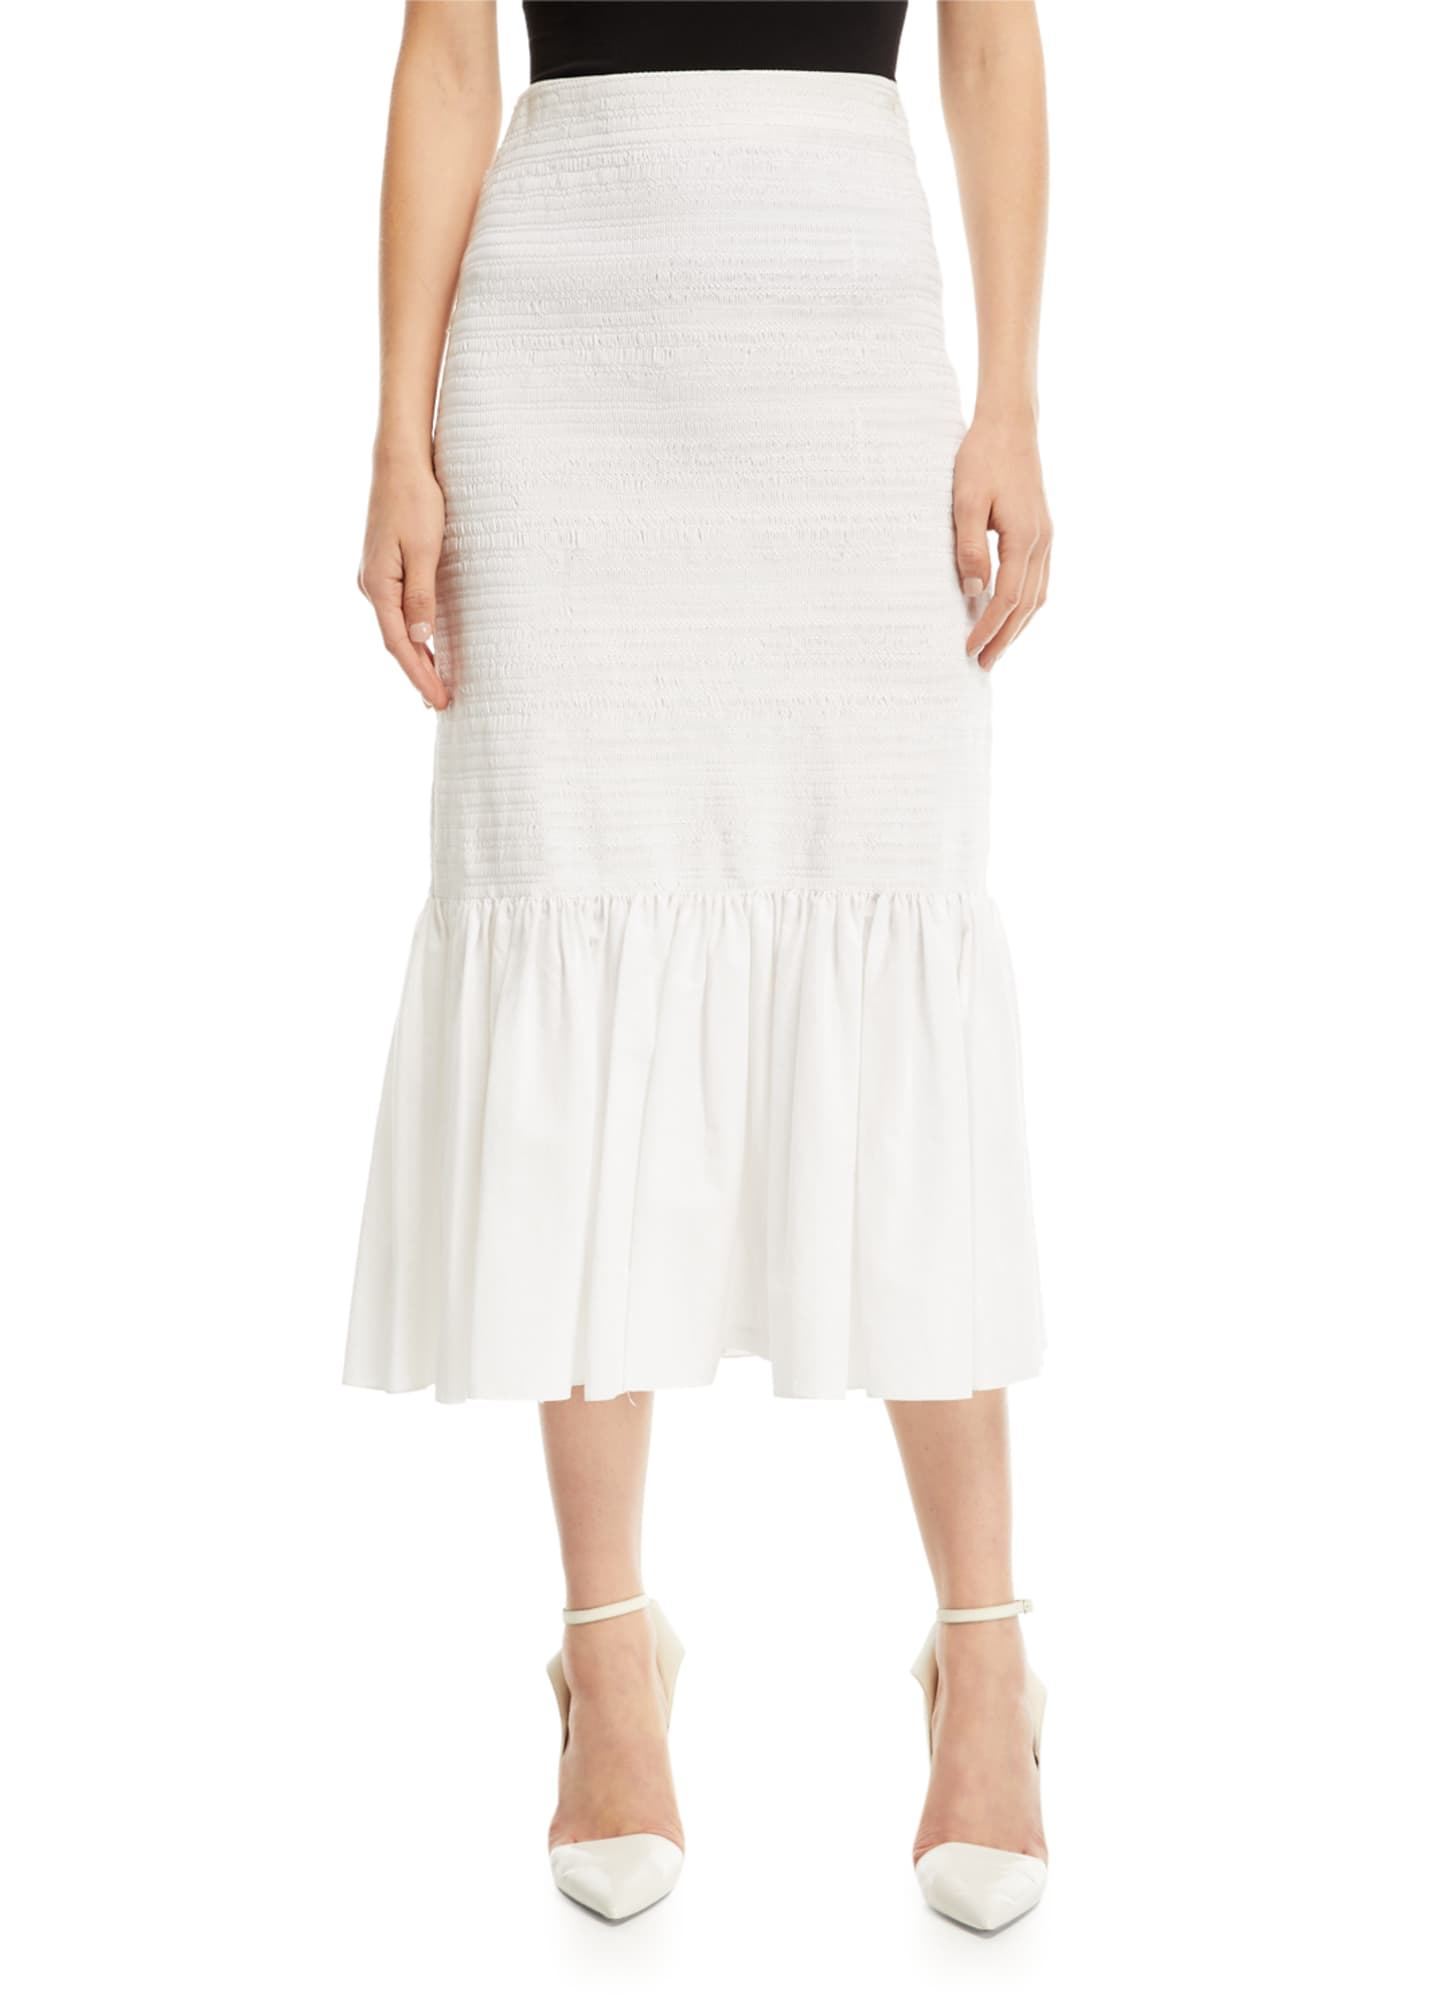 CALVIN KLEIN 205W39NYC Fitted Cotton Midi Skirt